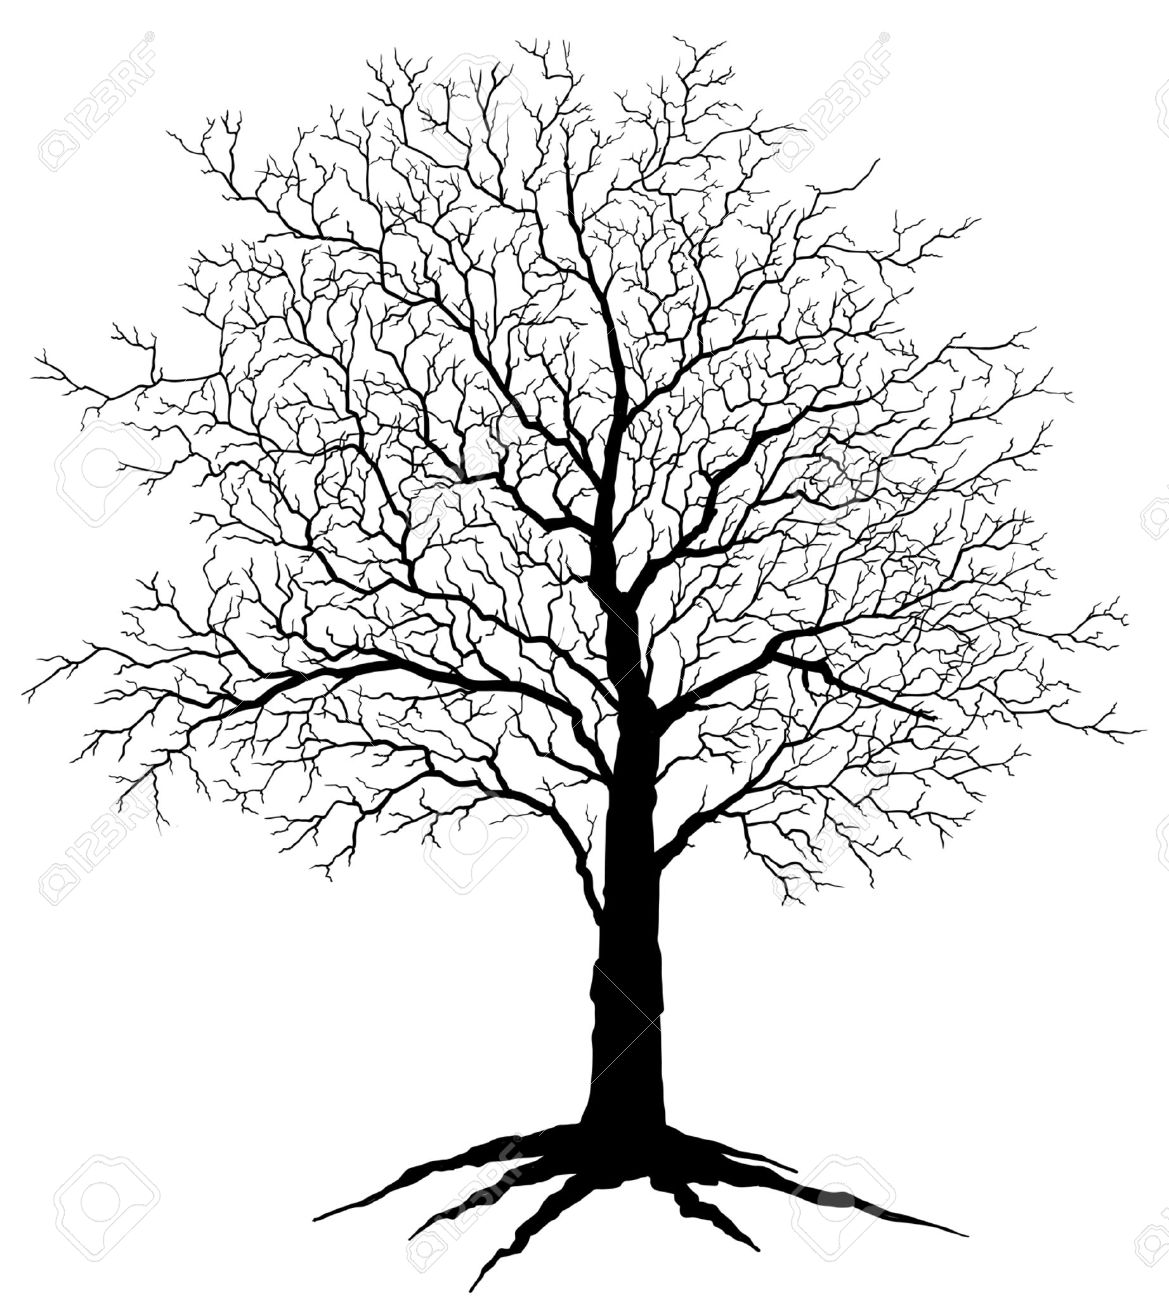 1169x1300 Tree Silhouette Is An Illustration Of A Tree In Winter With No